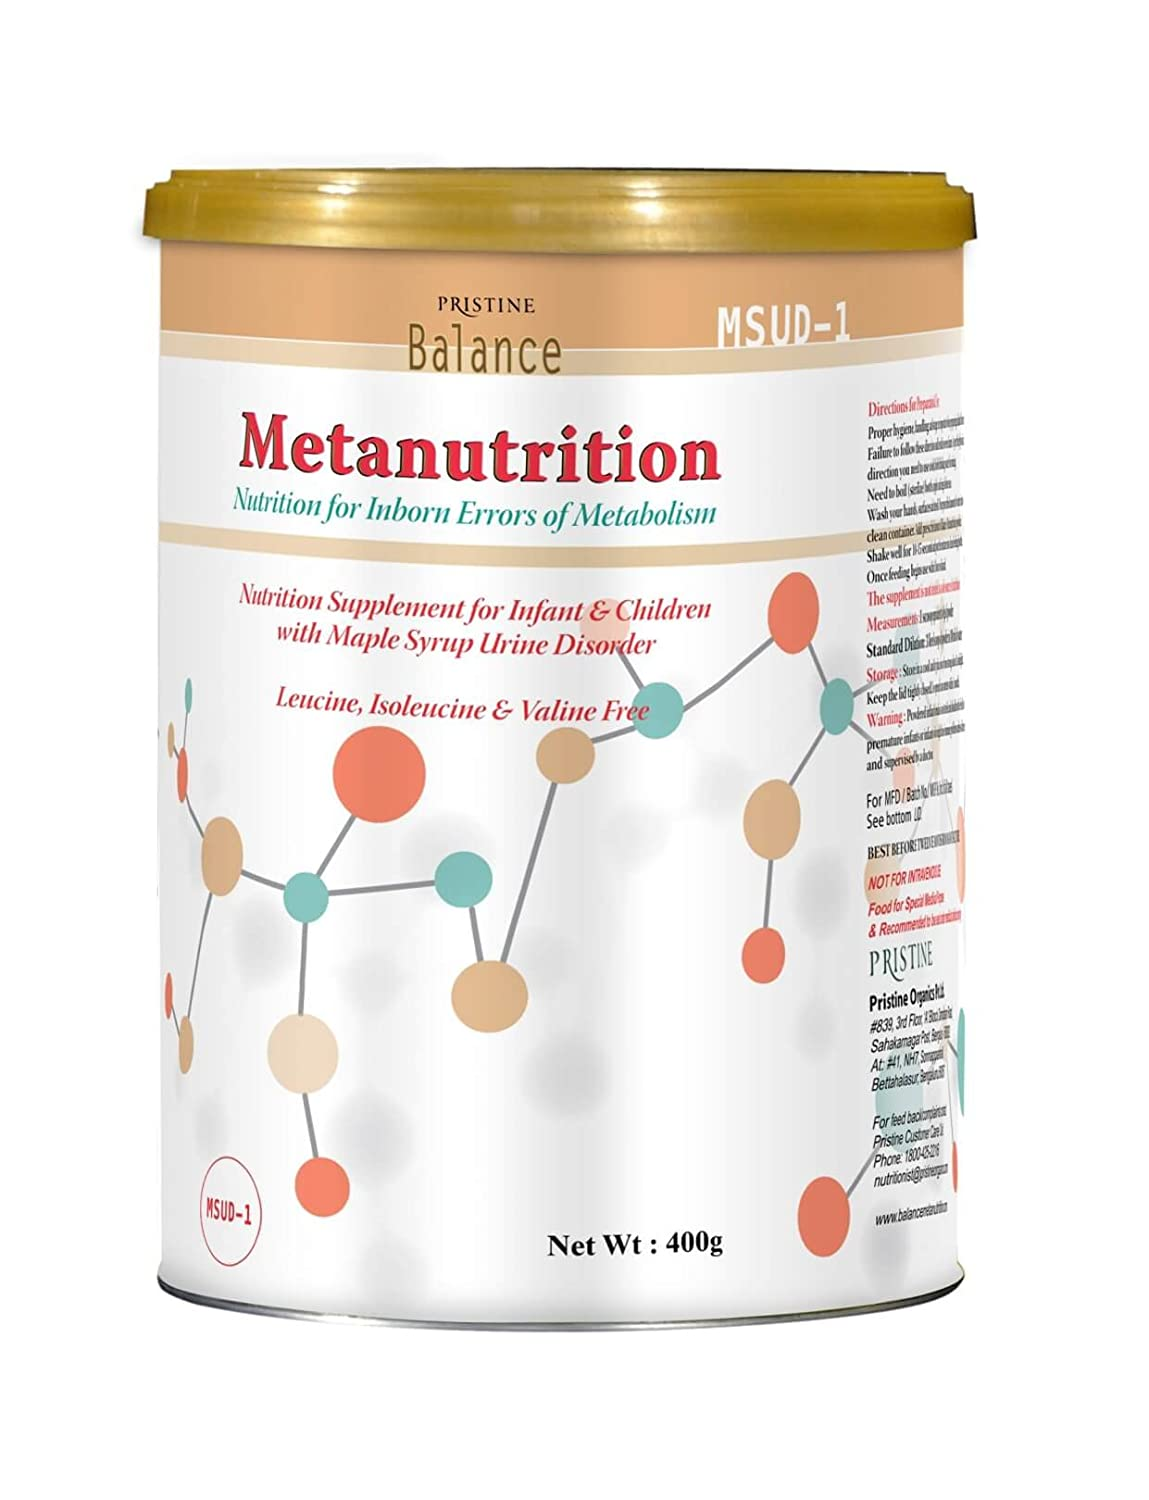 how much does msud diet powder cost